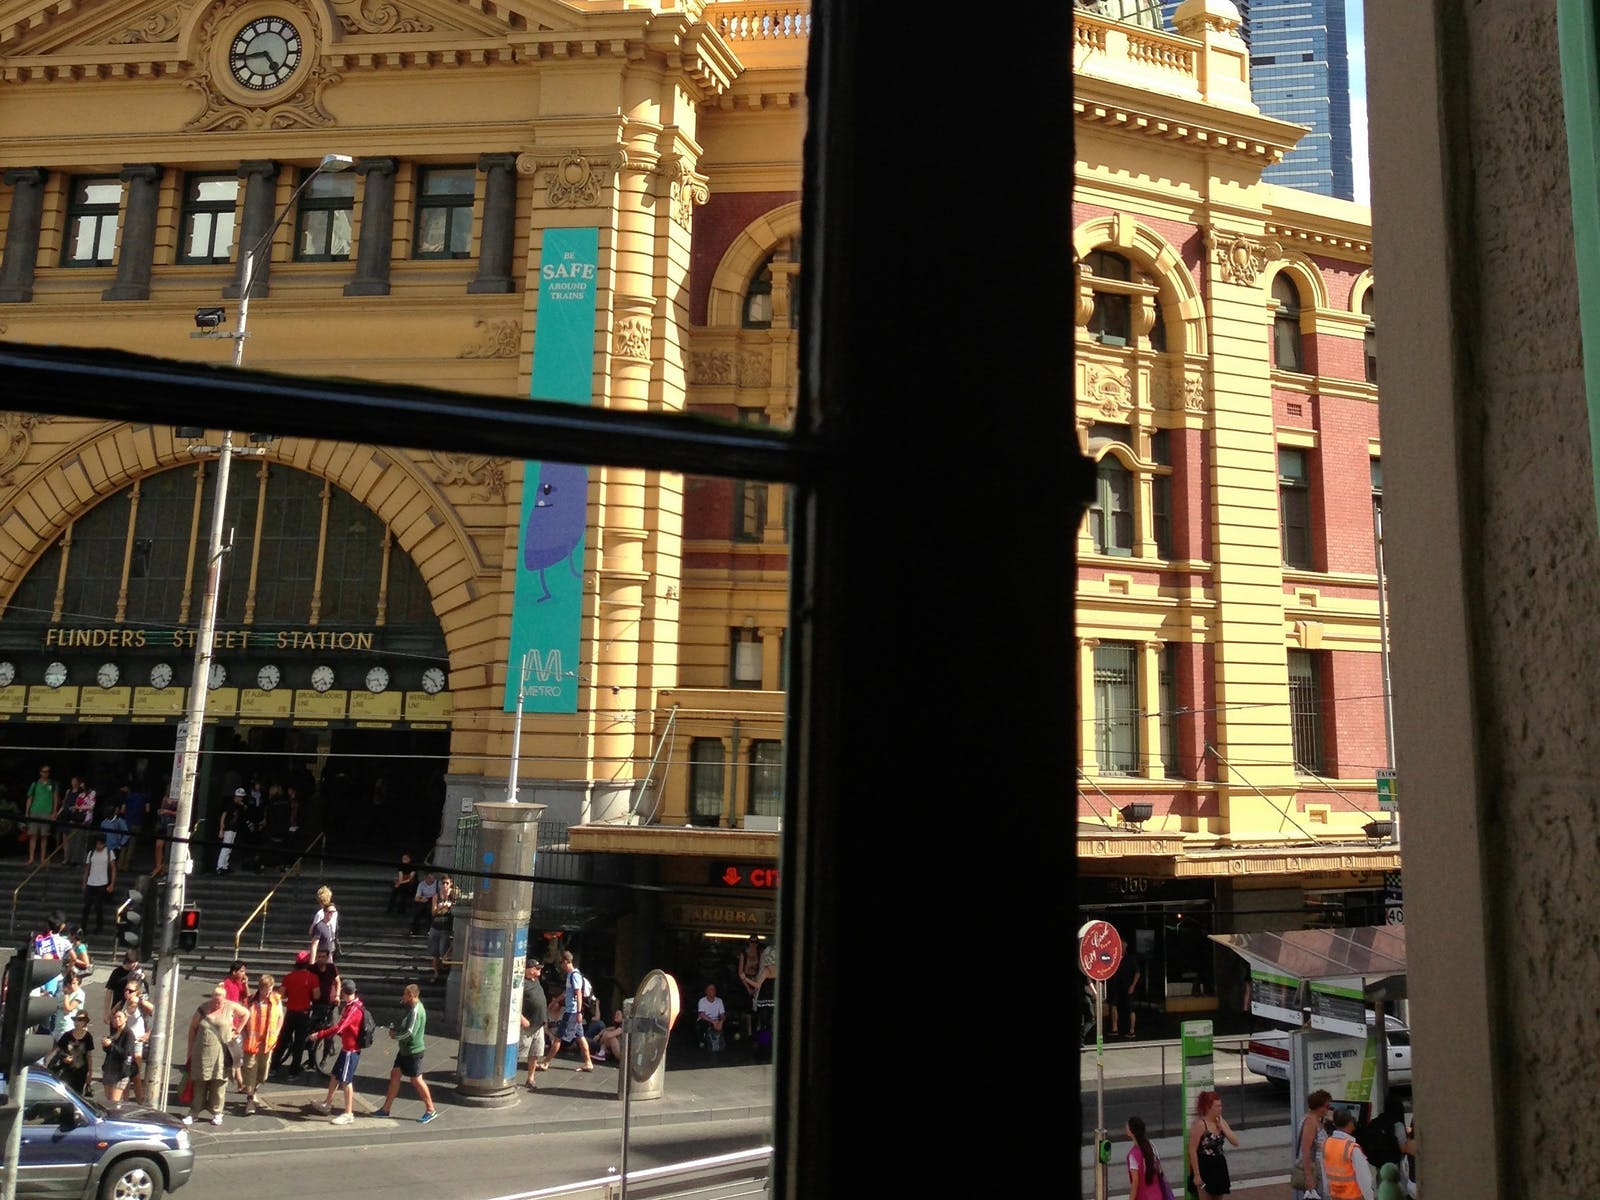 Melbourne's most famous intersection at Flinders Street Station.